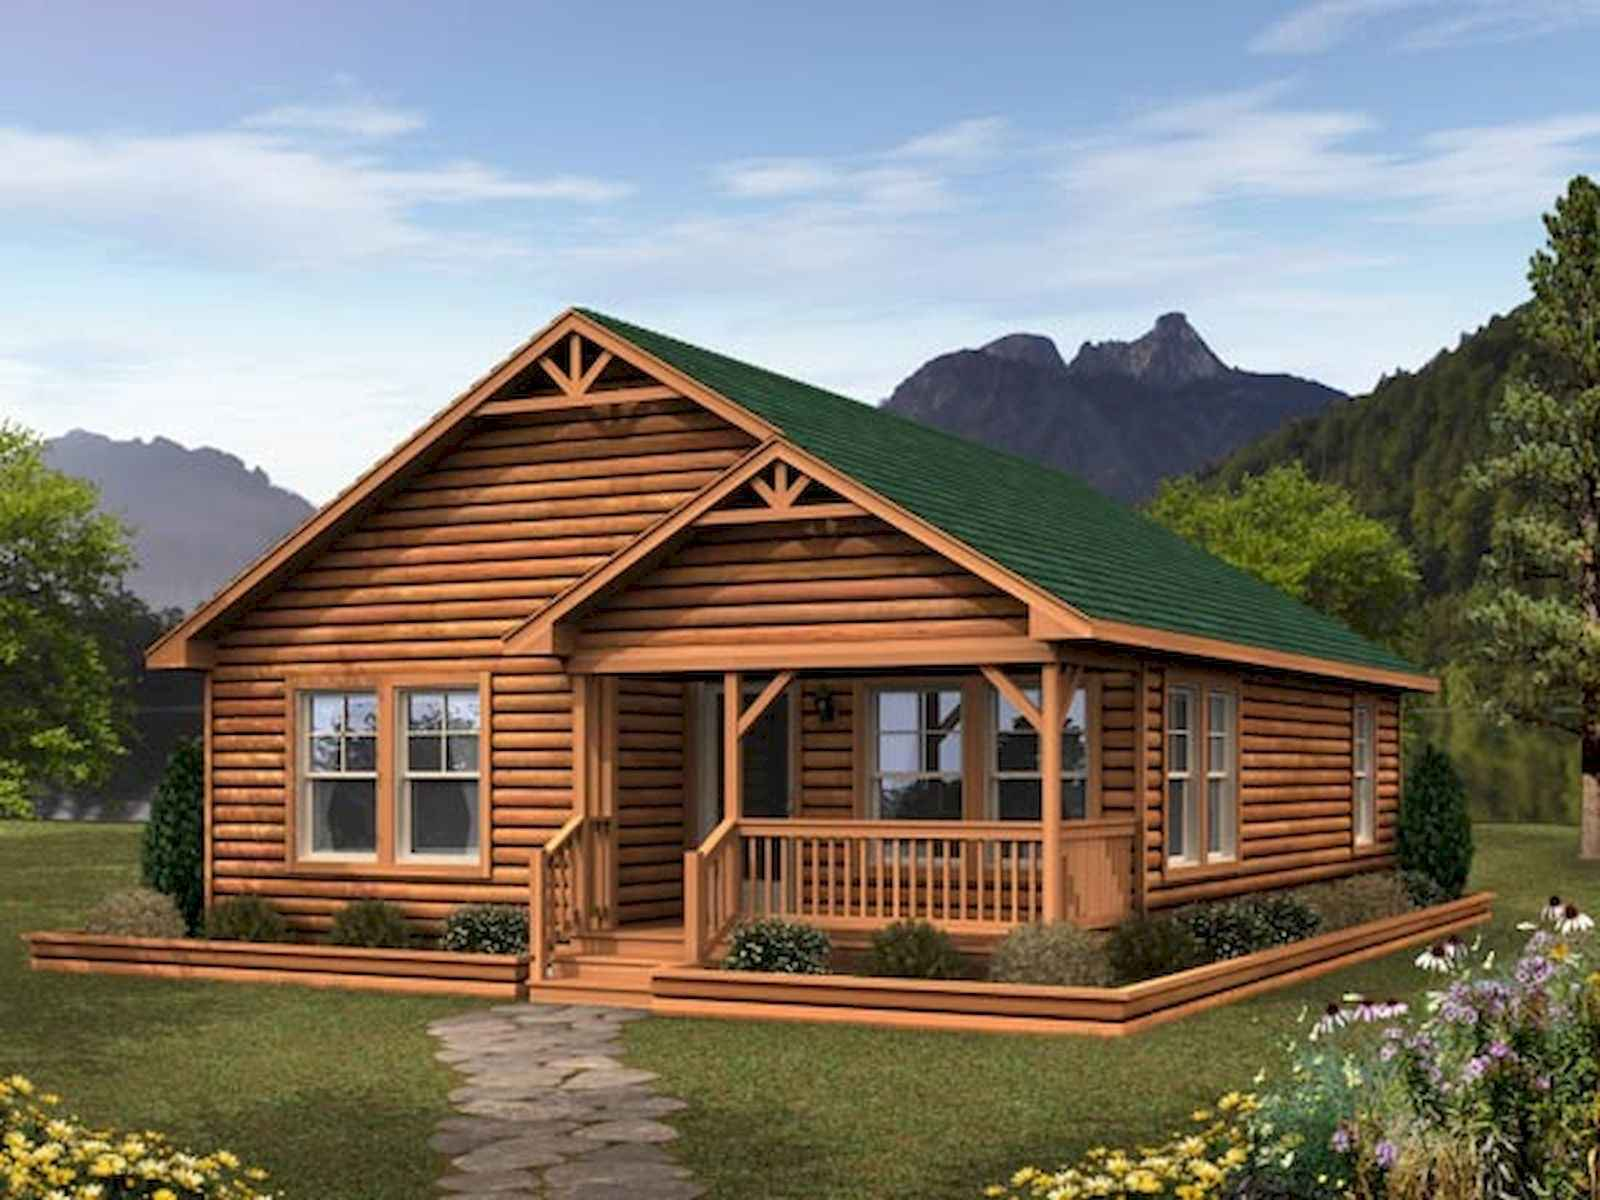 60 Rustic Log Cabin Homes Plans Design Ideas And Remodel (38)